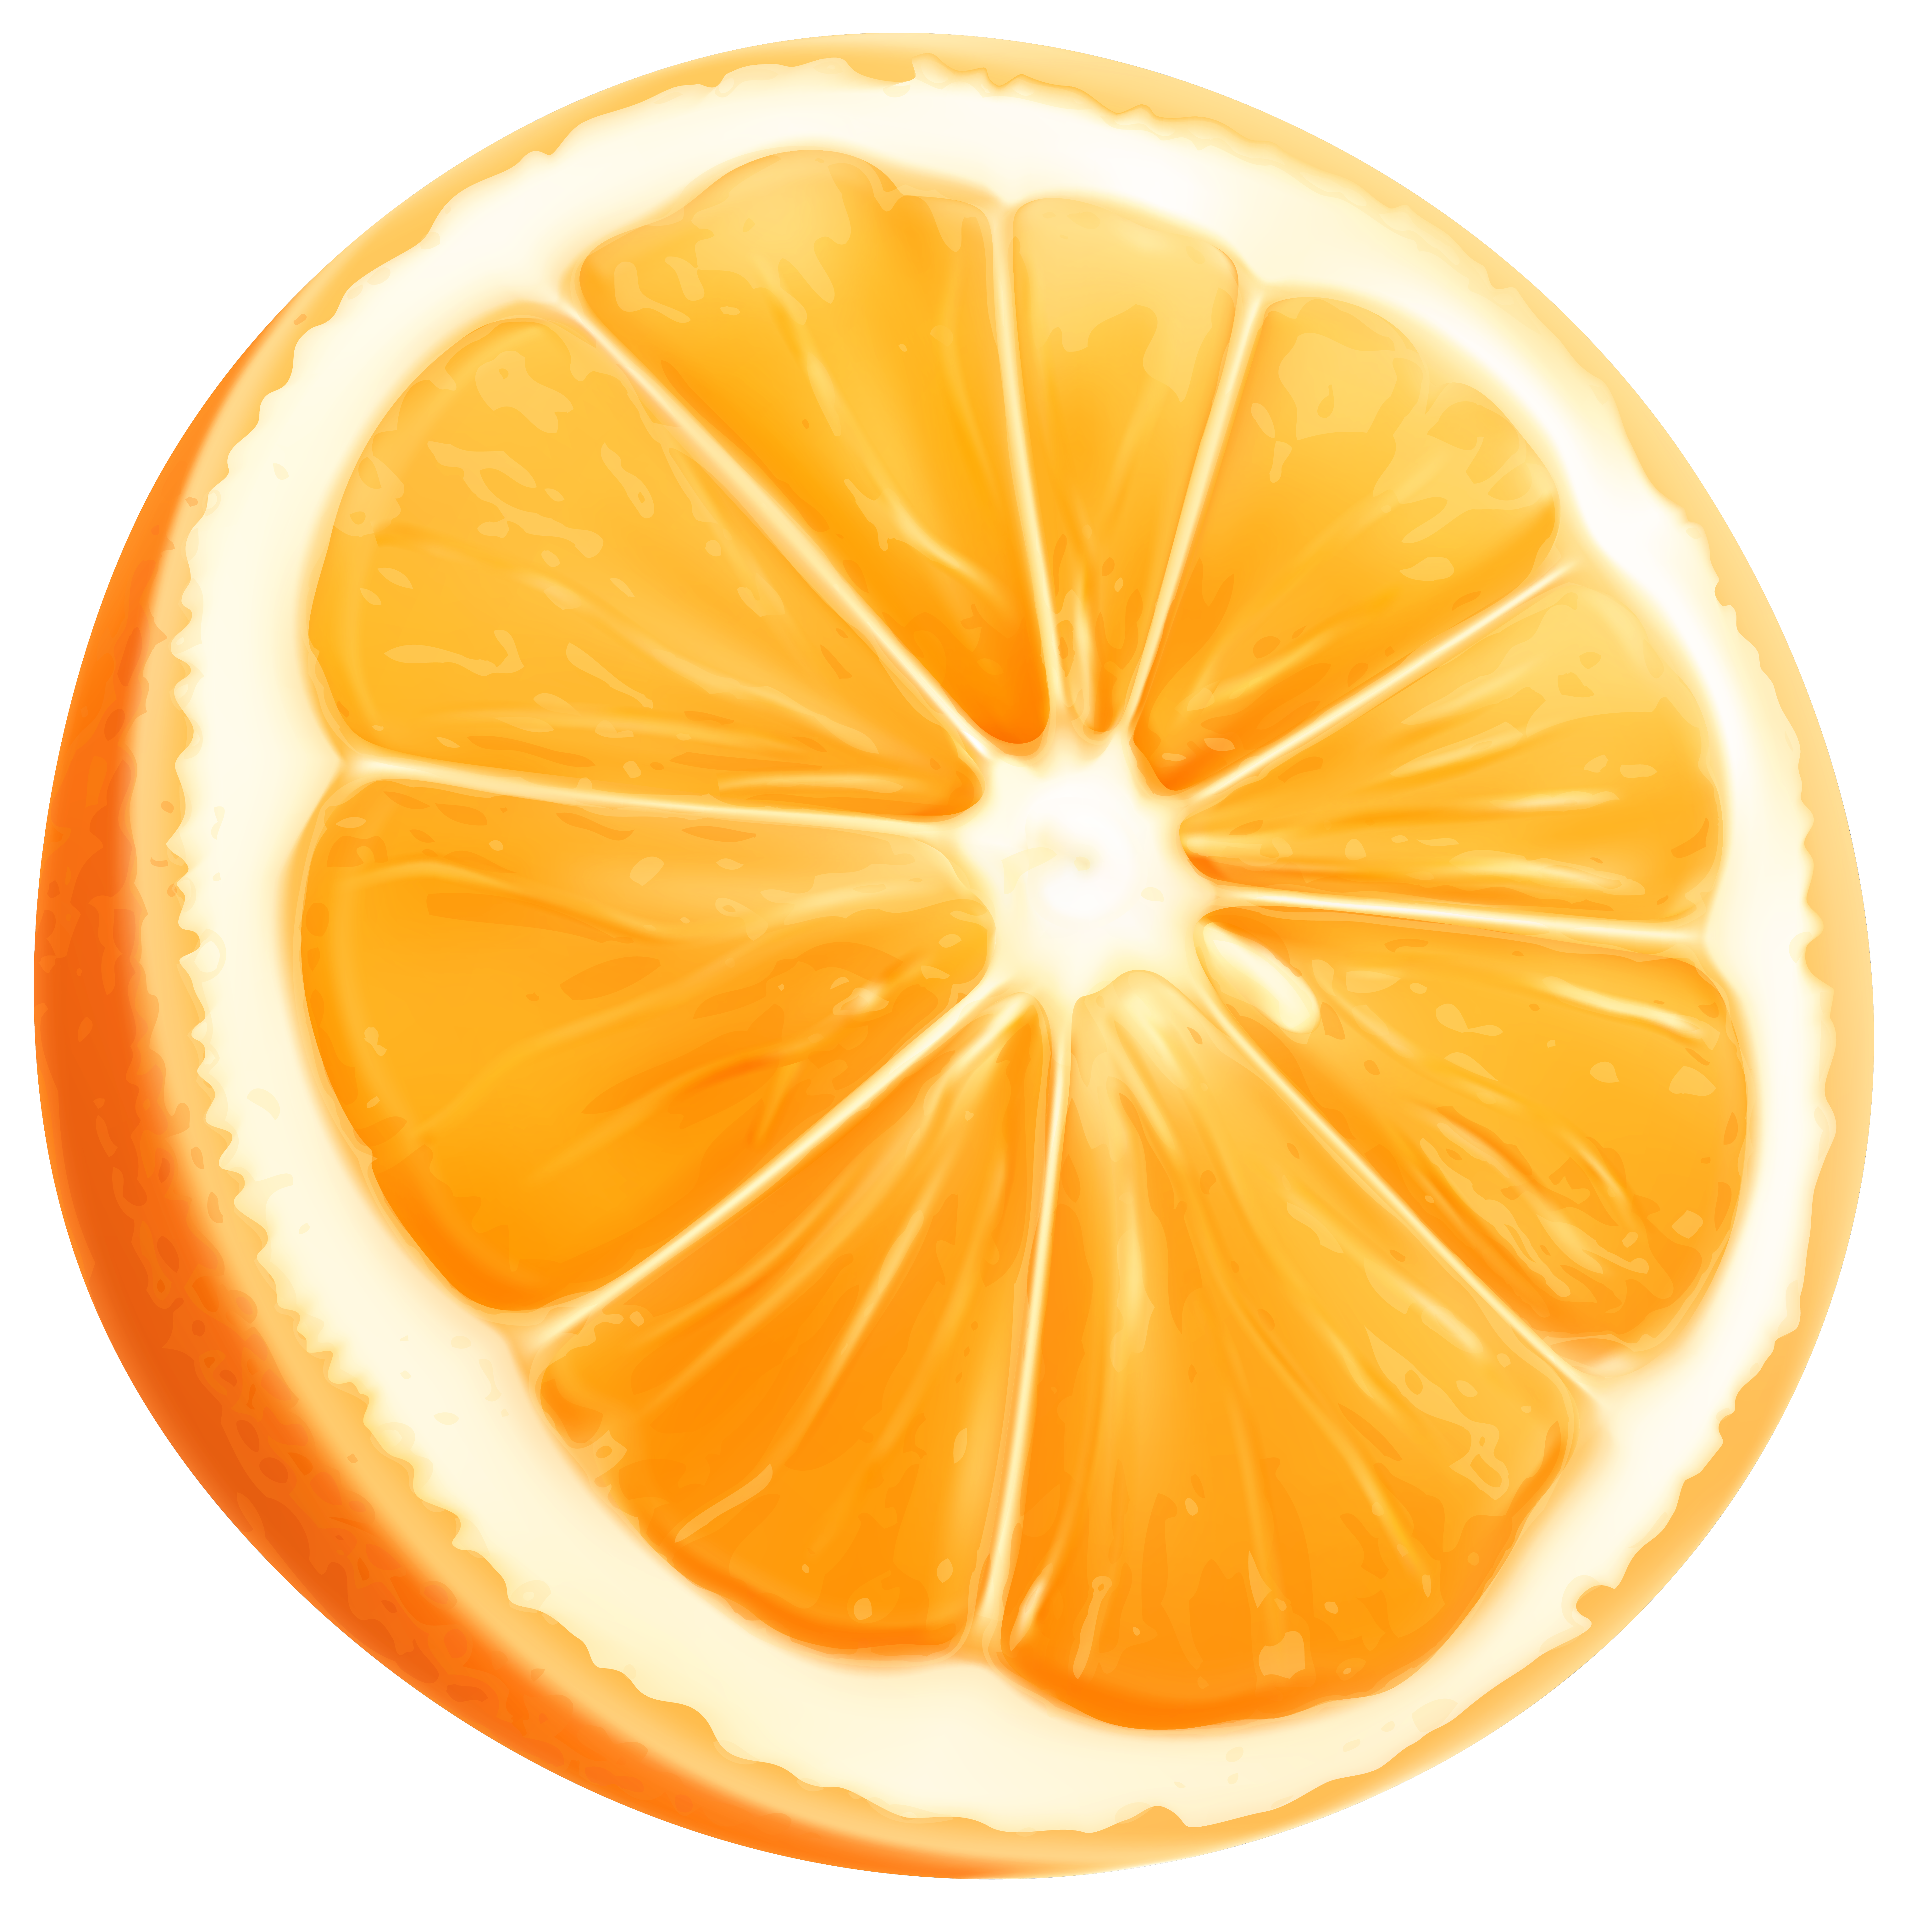 Orange Slice Png Clip Art Image Gallery Yopriceville High Quality Images And Transparent Png Free Clipart Clip Art Art Images Orange